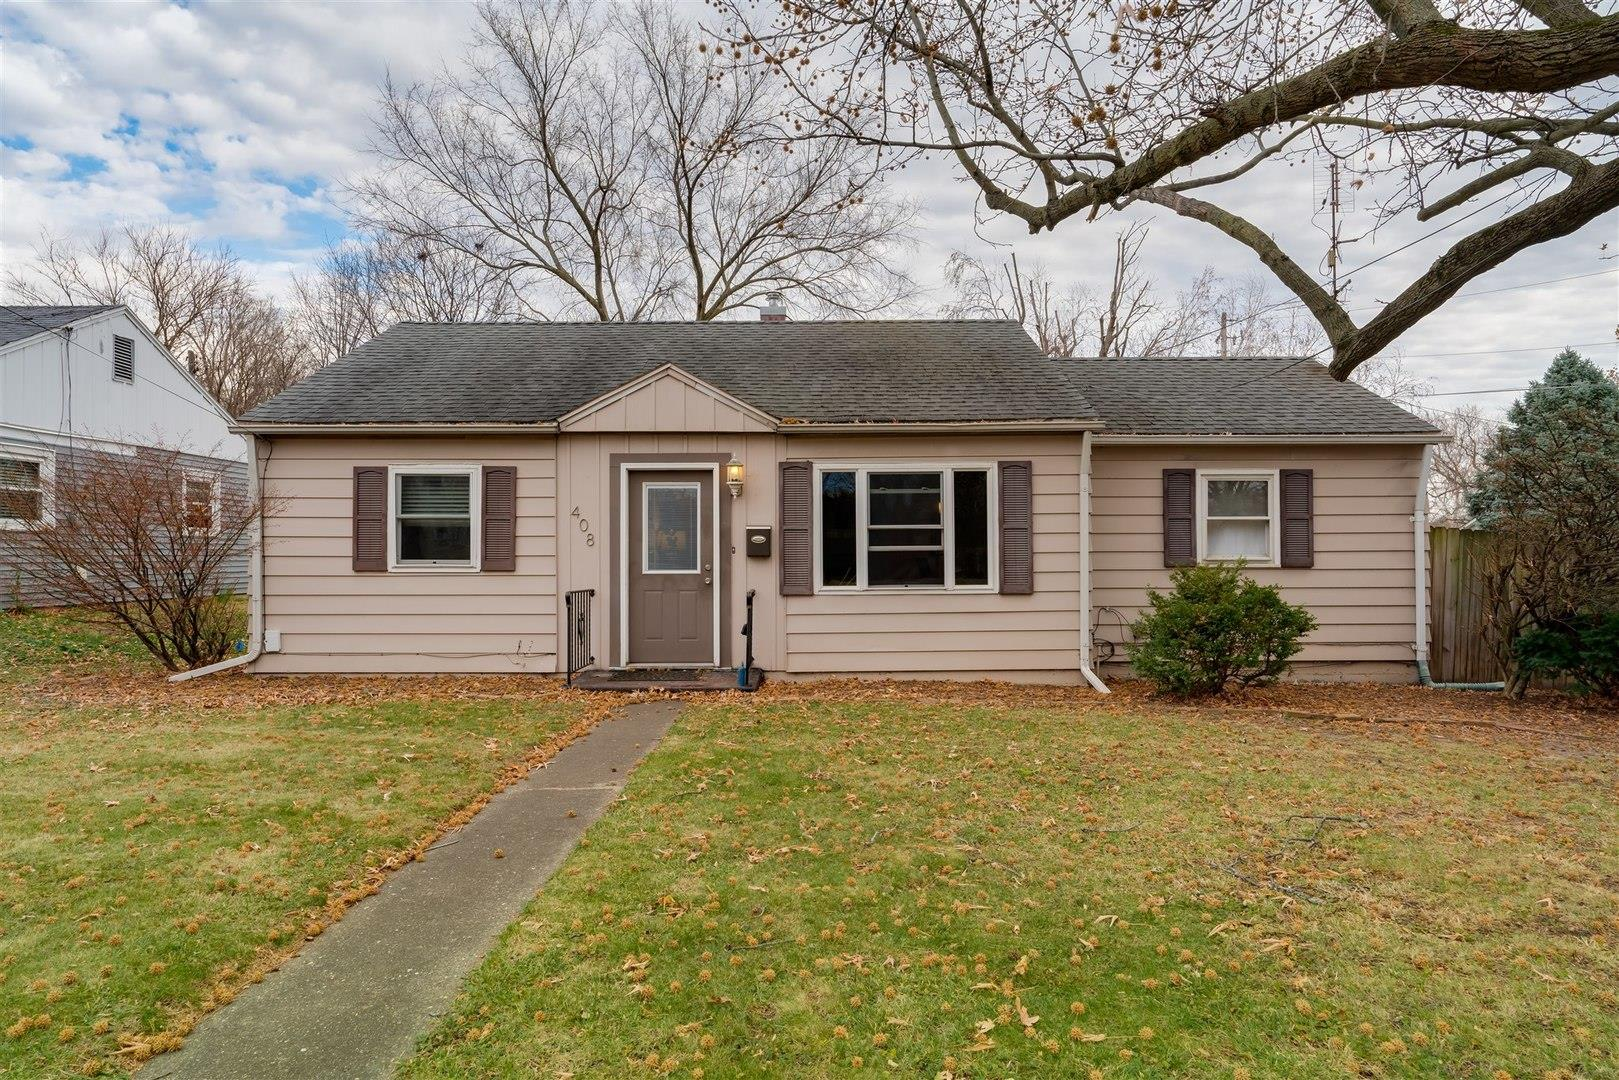 408 S Linden Street, Normal, IL 61761 - #: 10937985